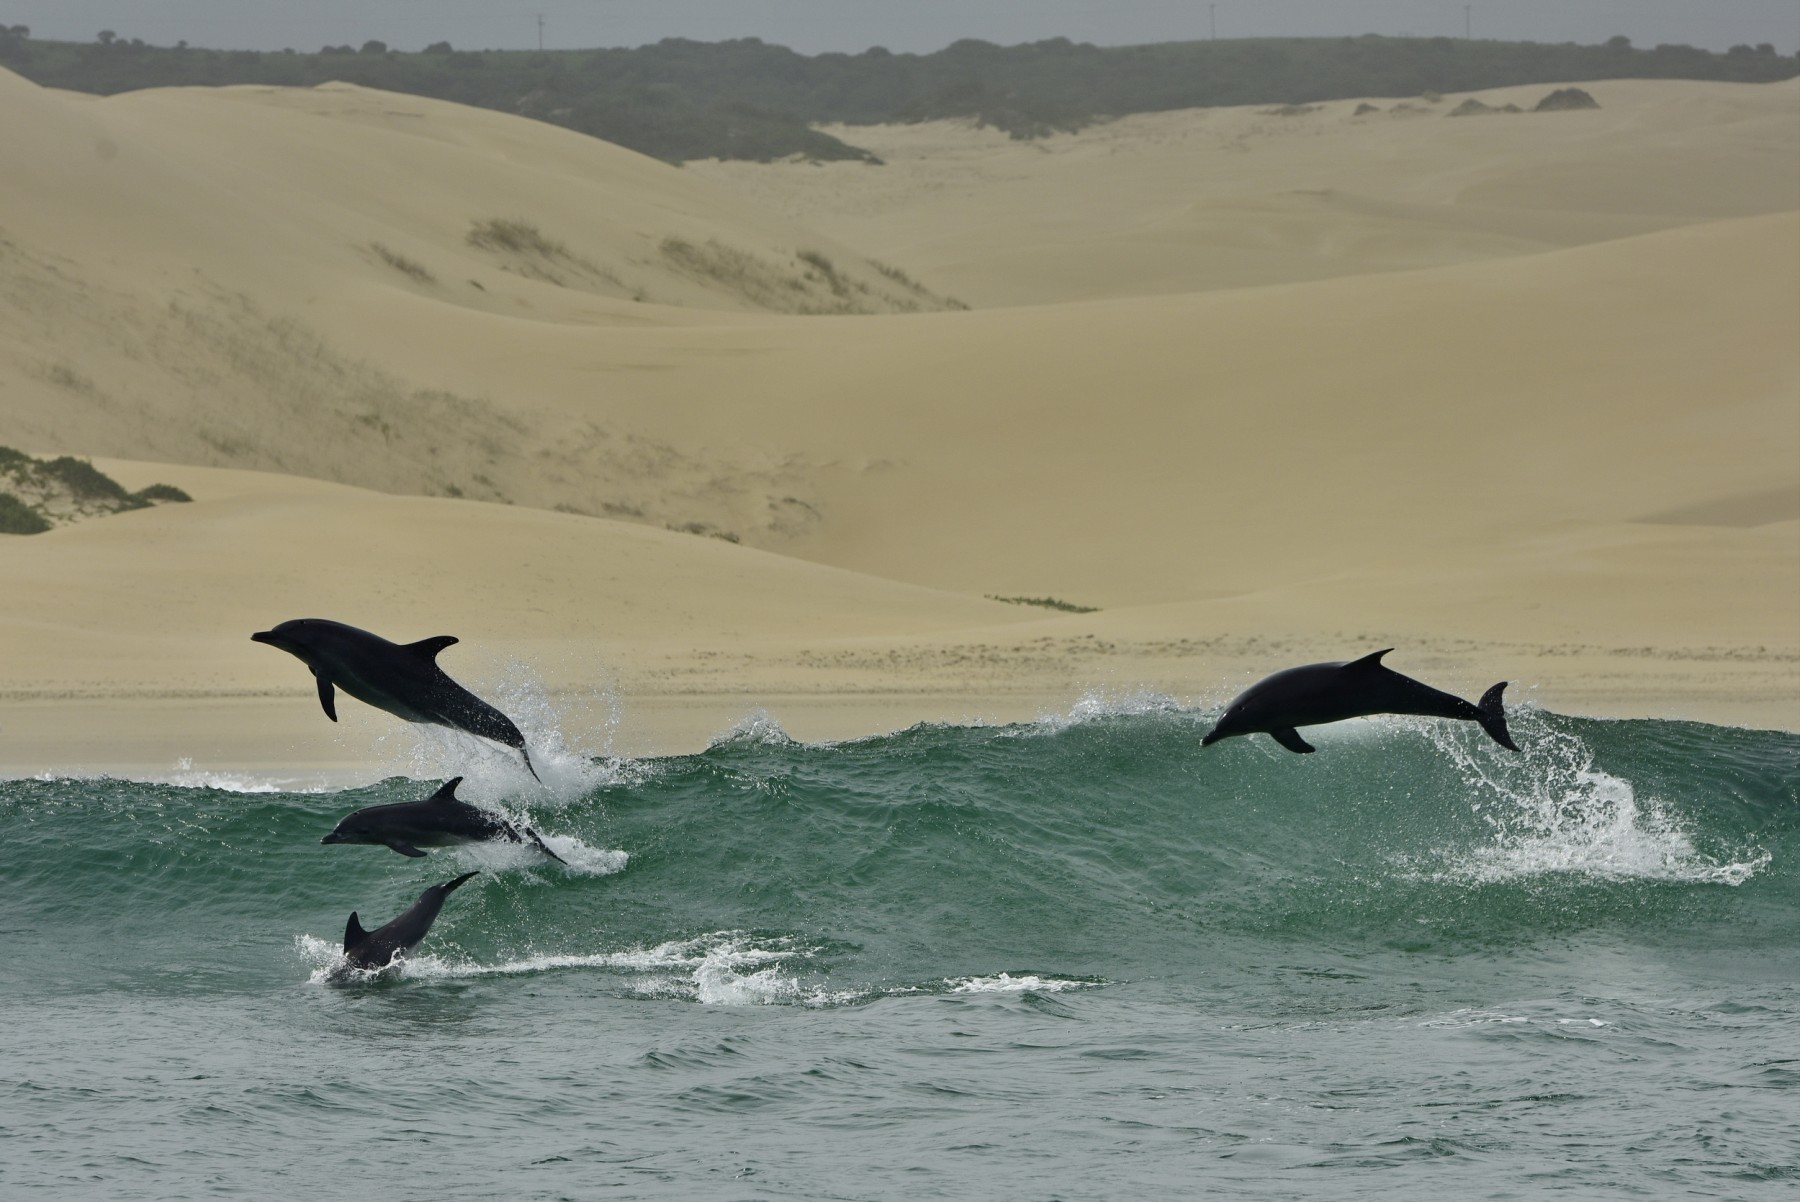 Dolphins jumping out of the water at Algoa Bay